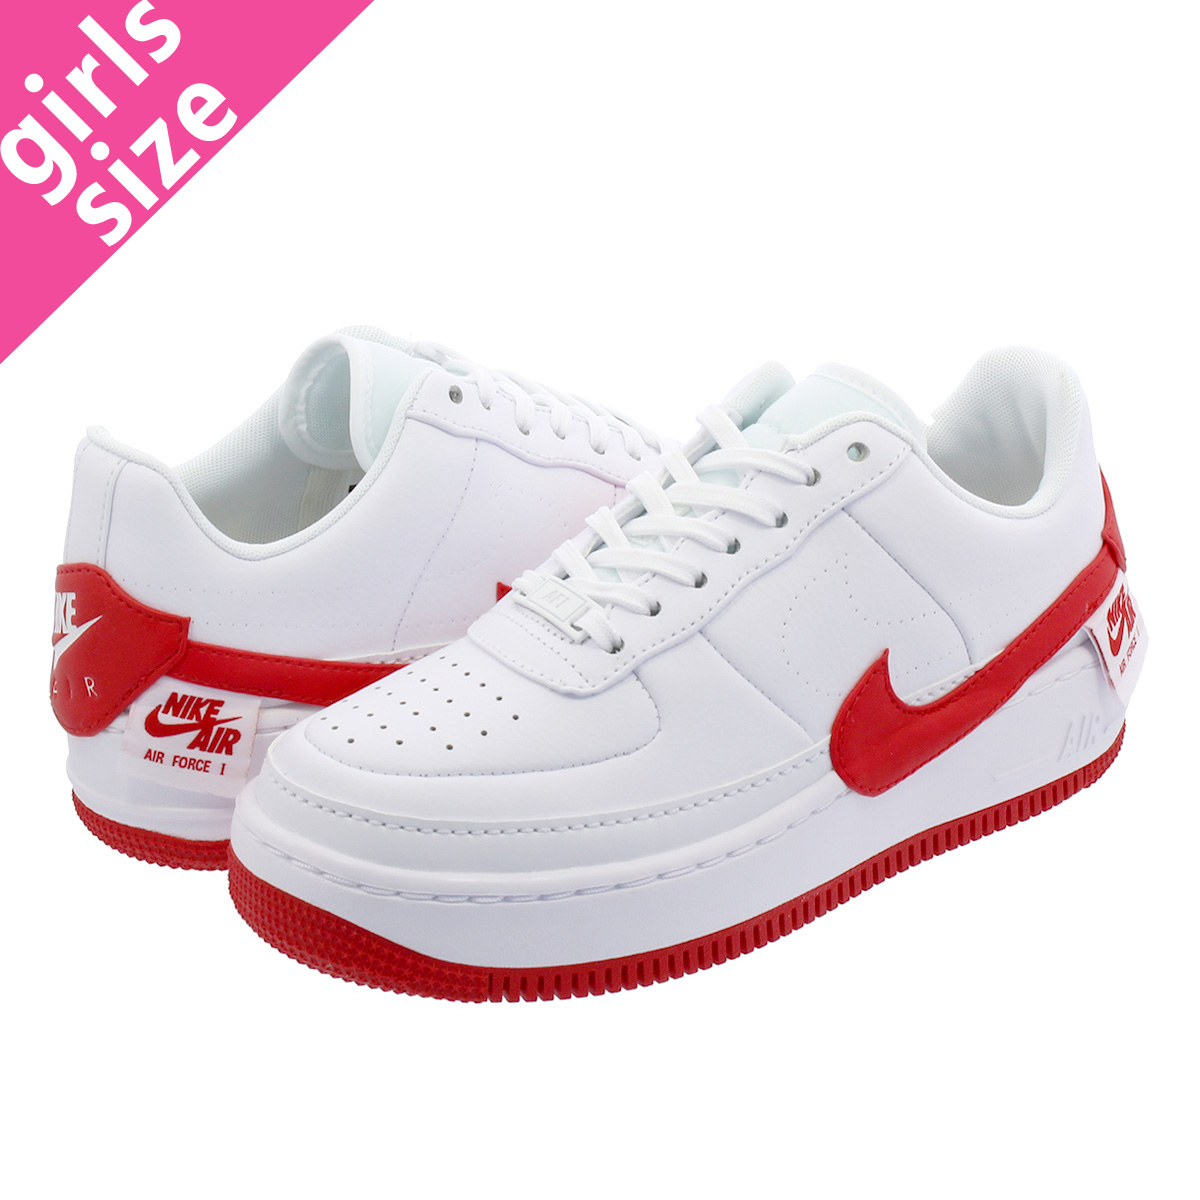 sneakers for cheap 03743 6ad21 NIKE WMNS AIR FORCE 1 JESTER XX Nike women air force 1 Jester XX  WHITE UNIVERSITY RED ao1220-106